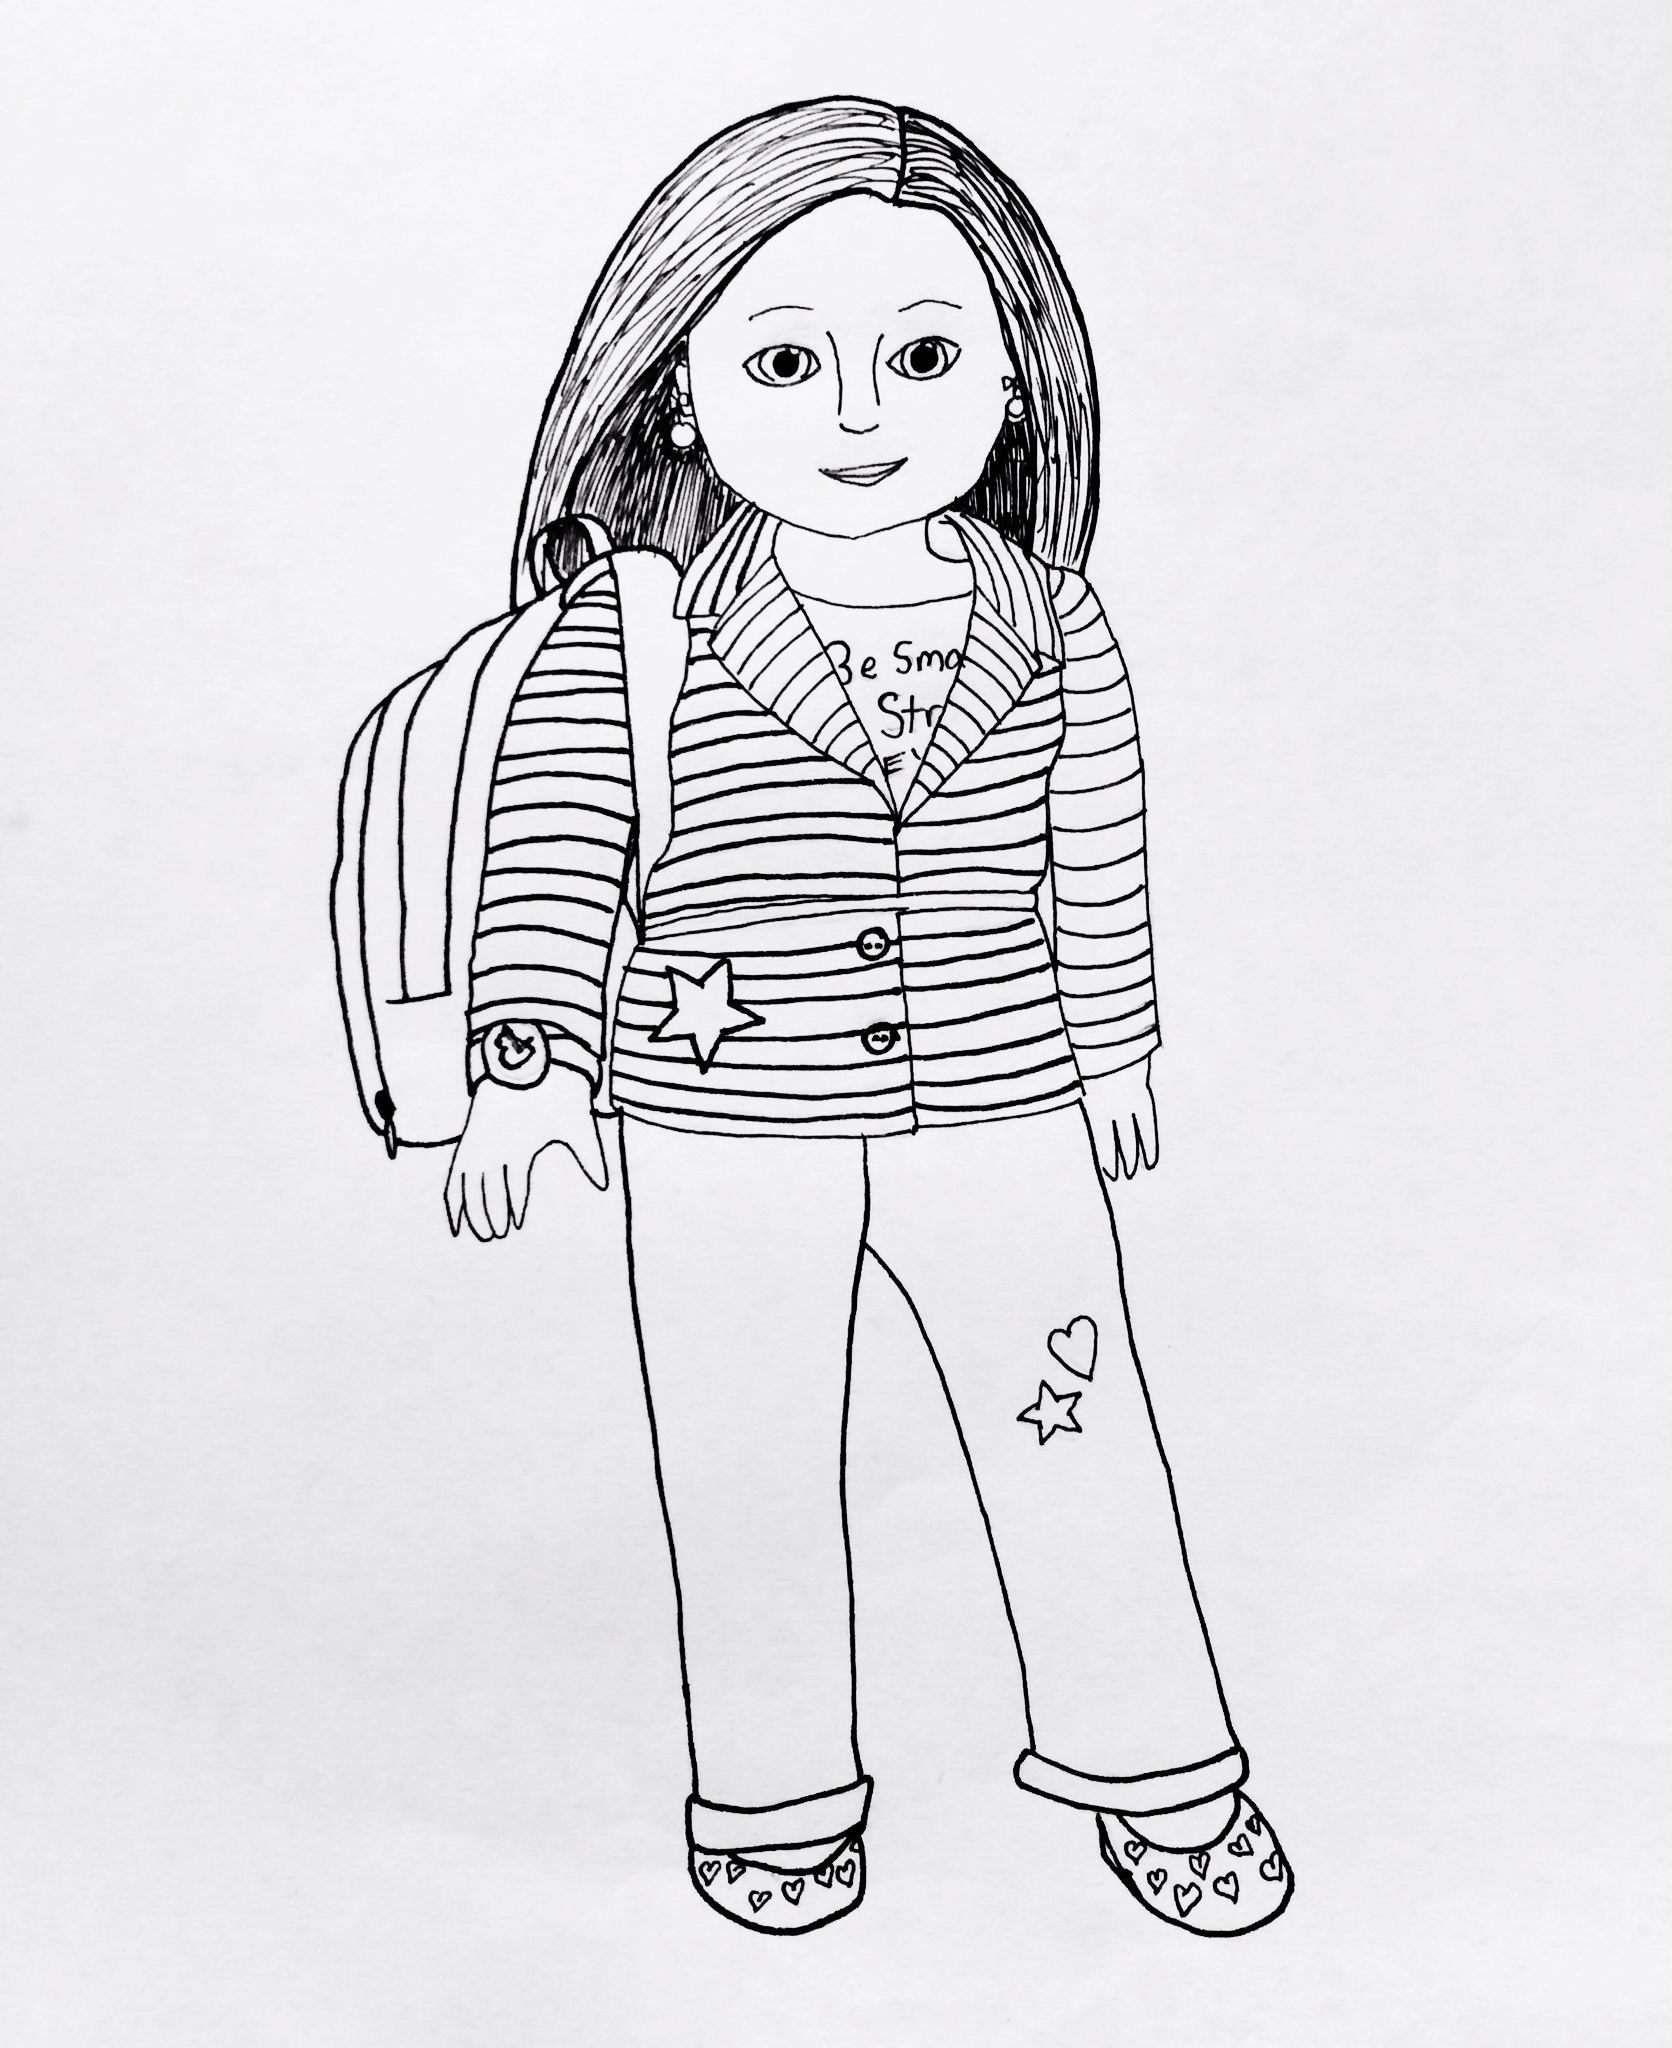 Amazing of Incridible American Girl Saige Coloring Page A #2501